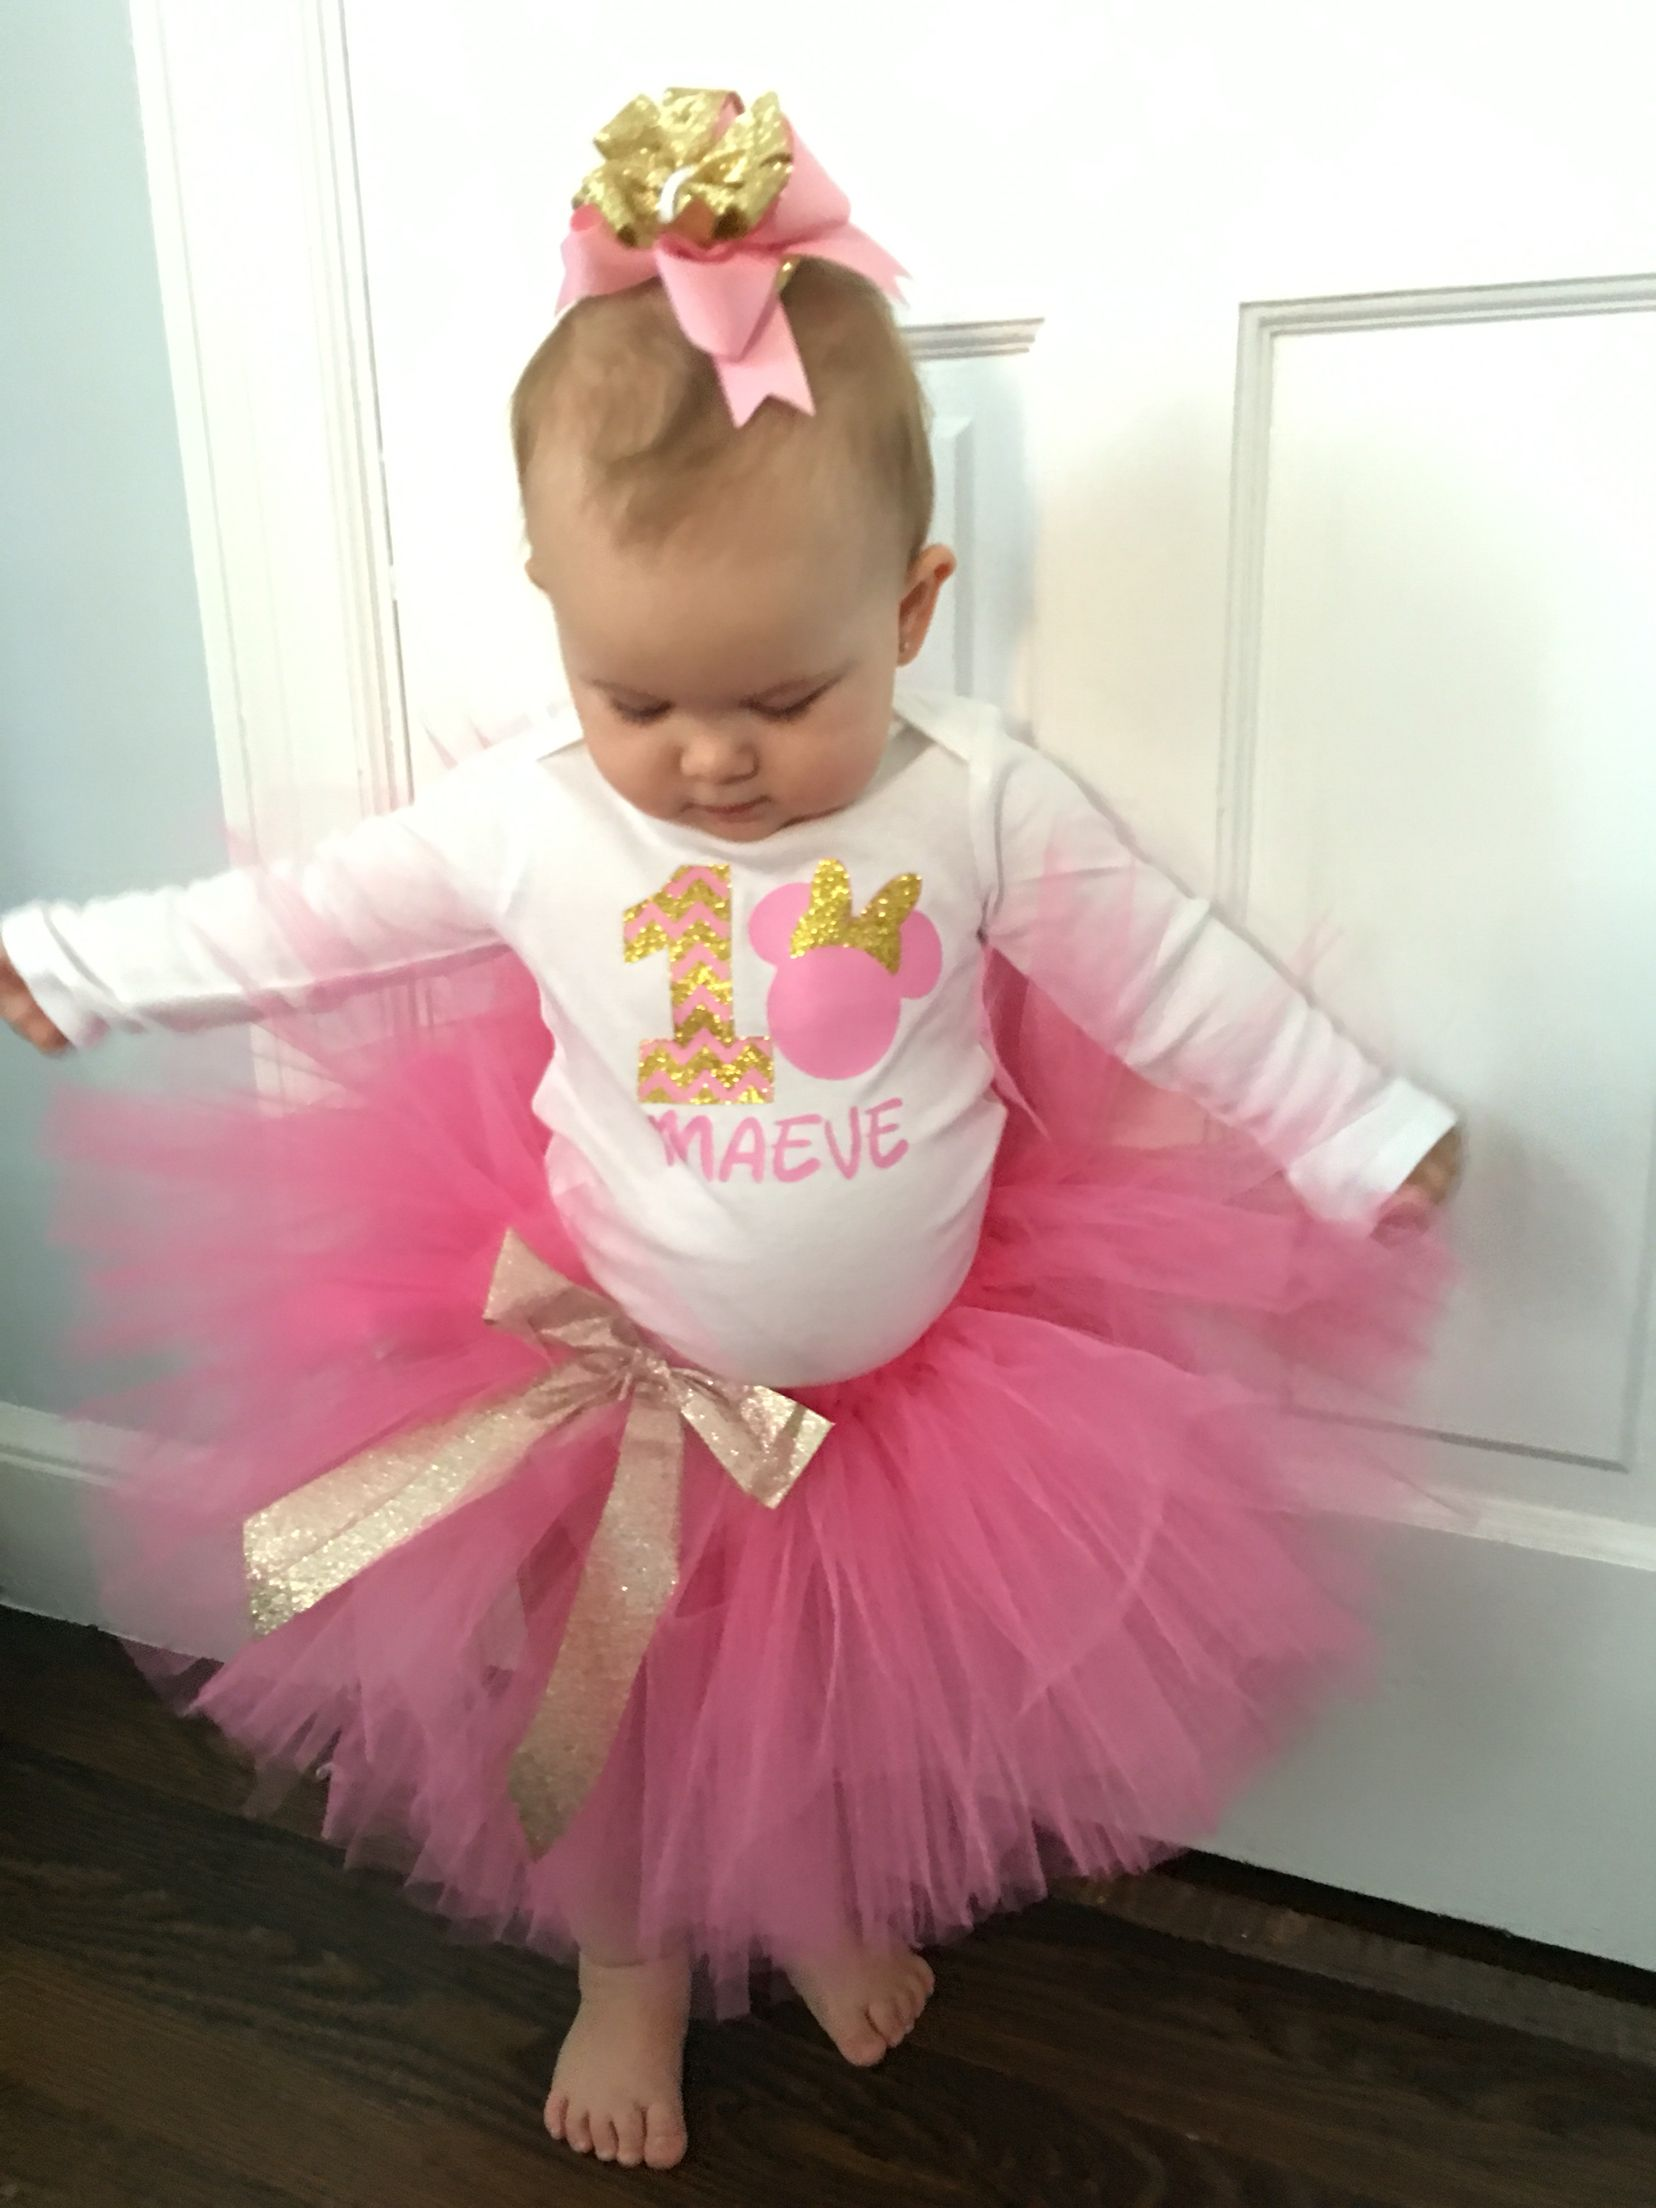 695a8c409982c Maeve's Birthday outfit! Pink and gold Minnie Mouse | First Birthday ...